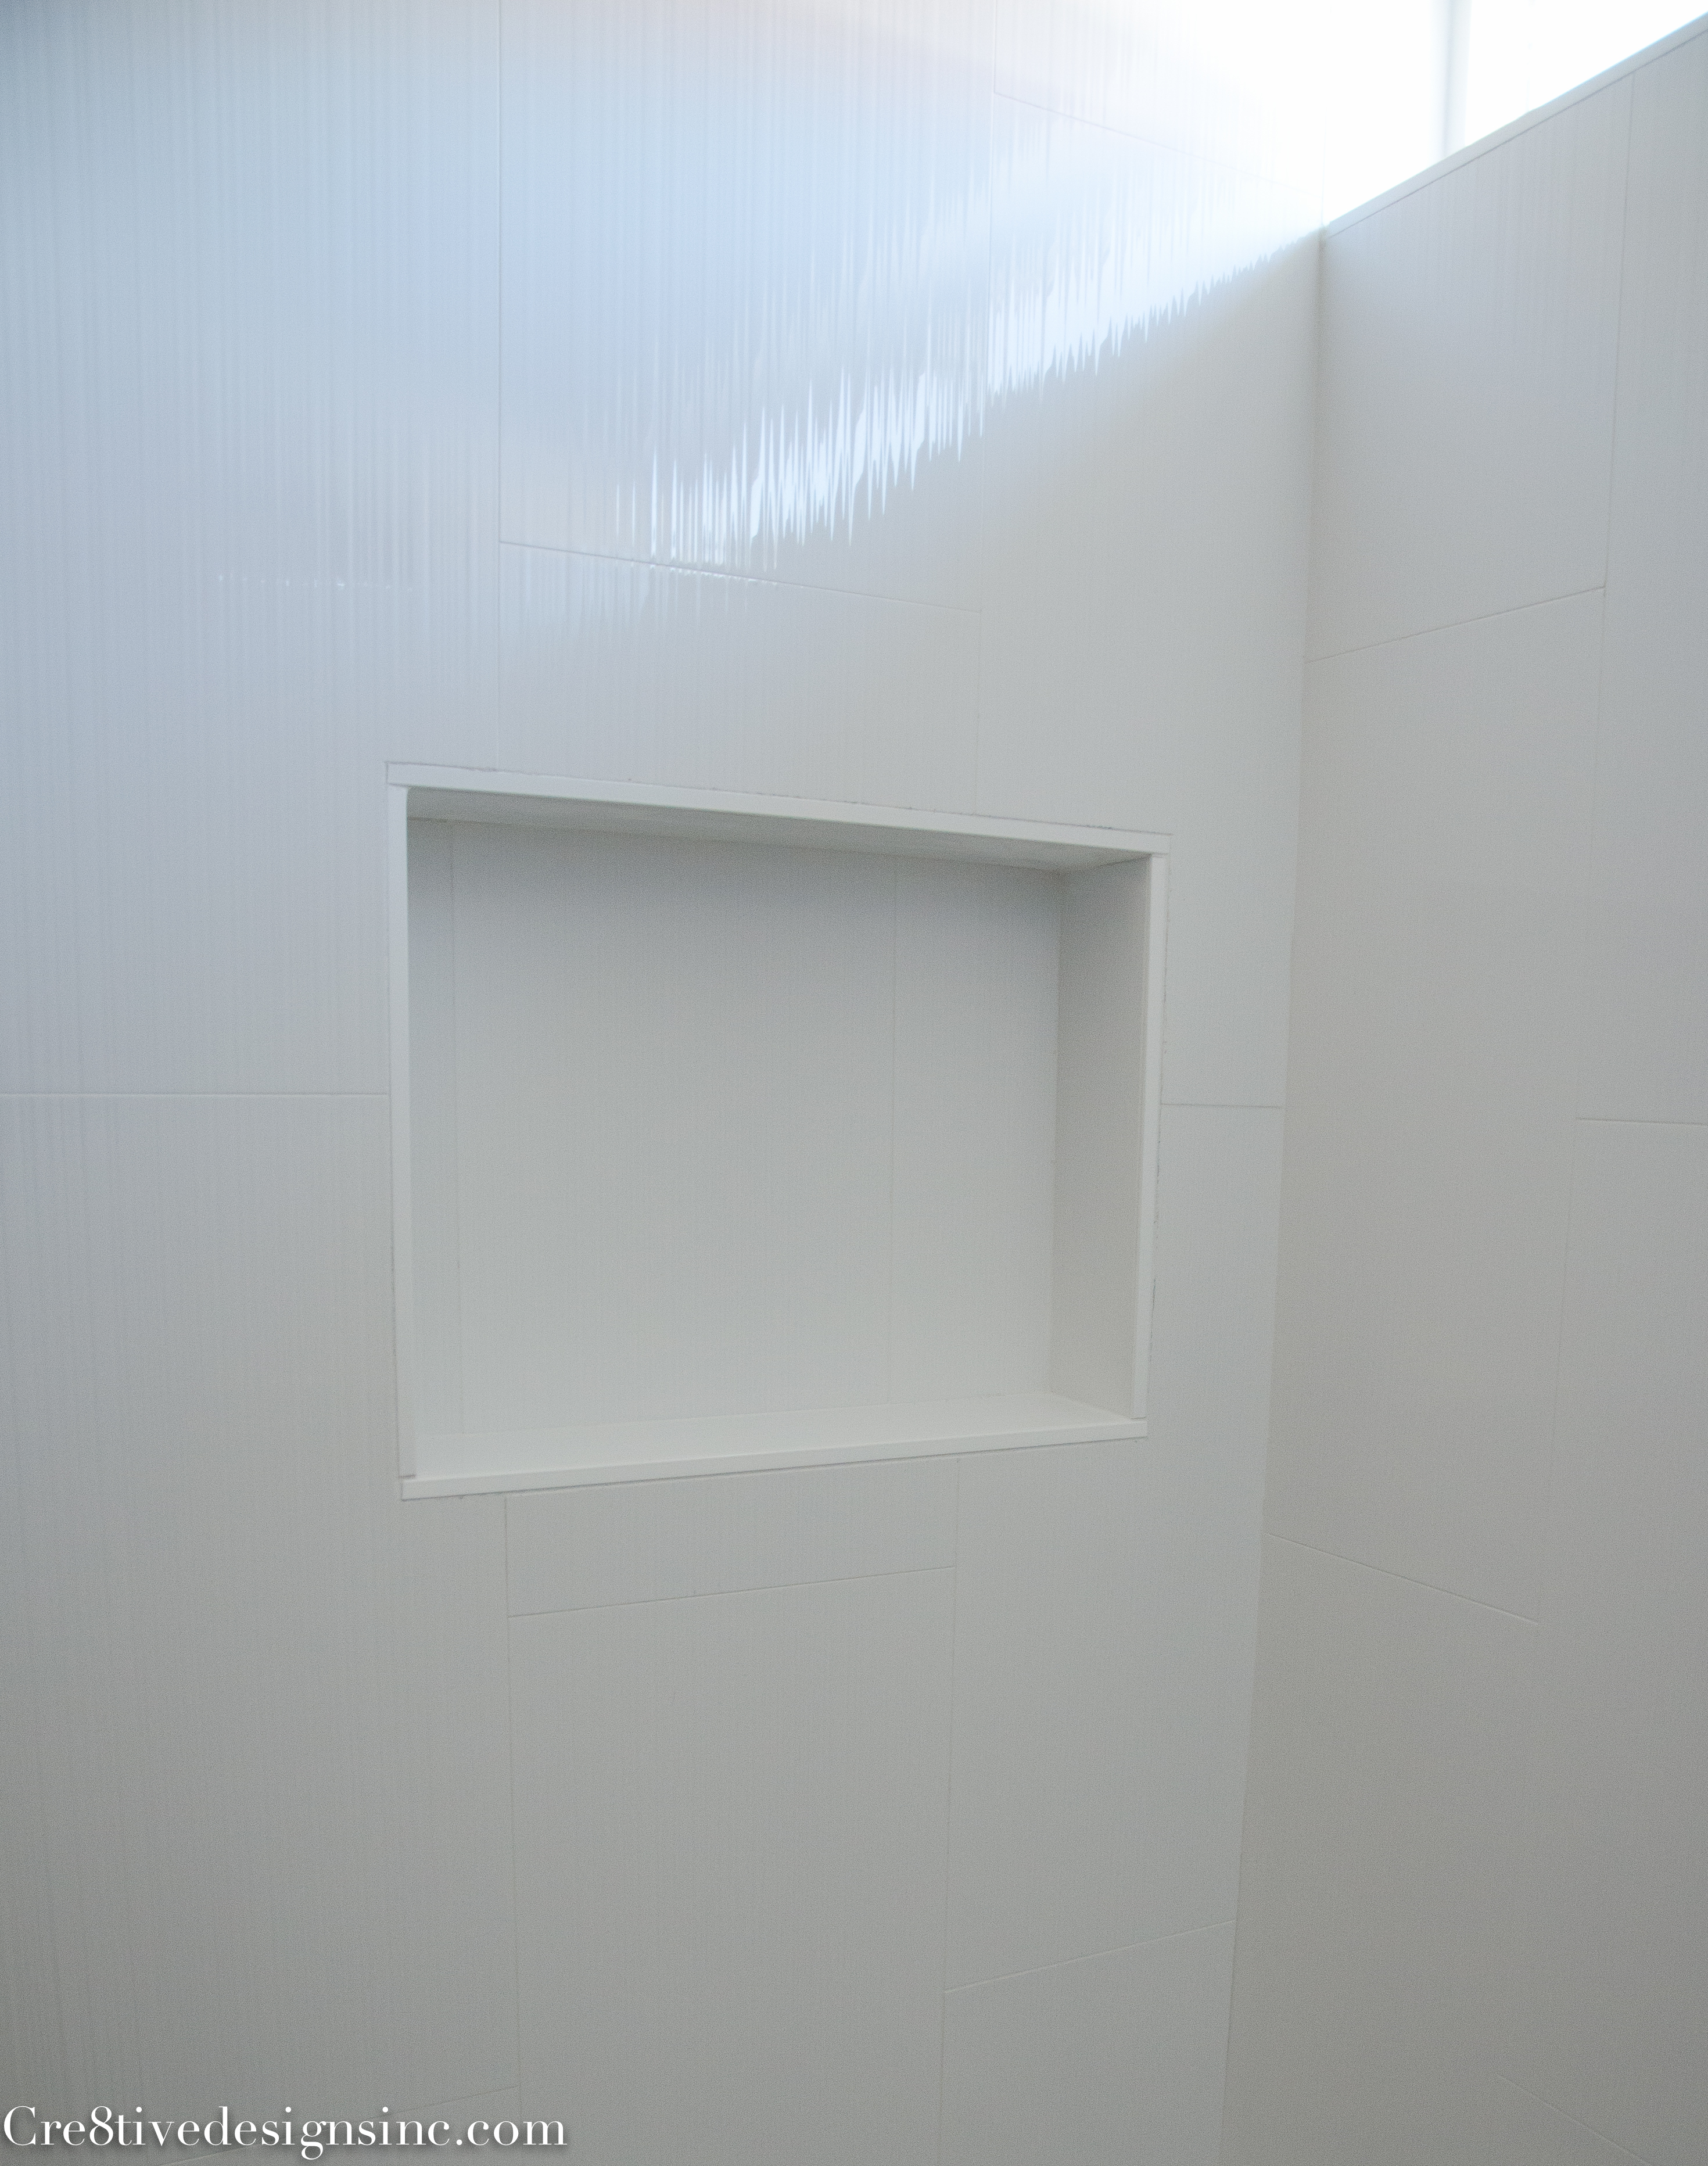 Ideal large white tiles in a tub shower area